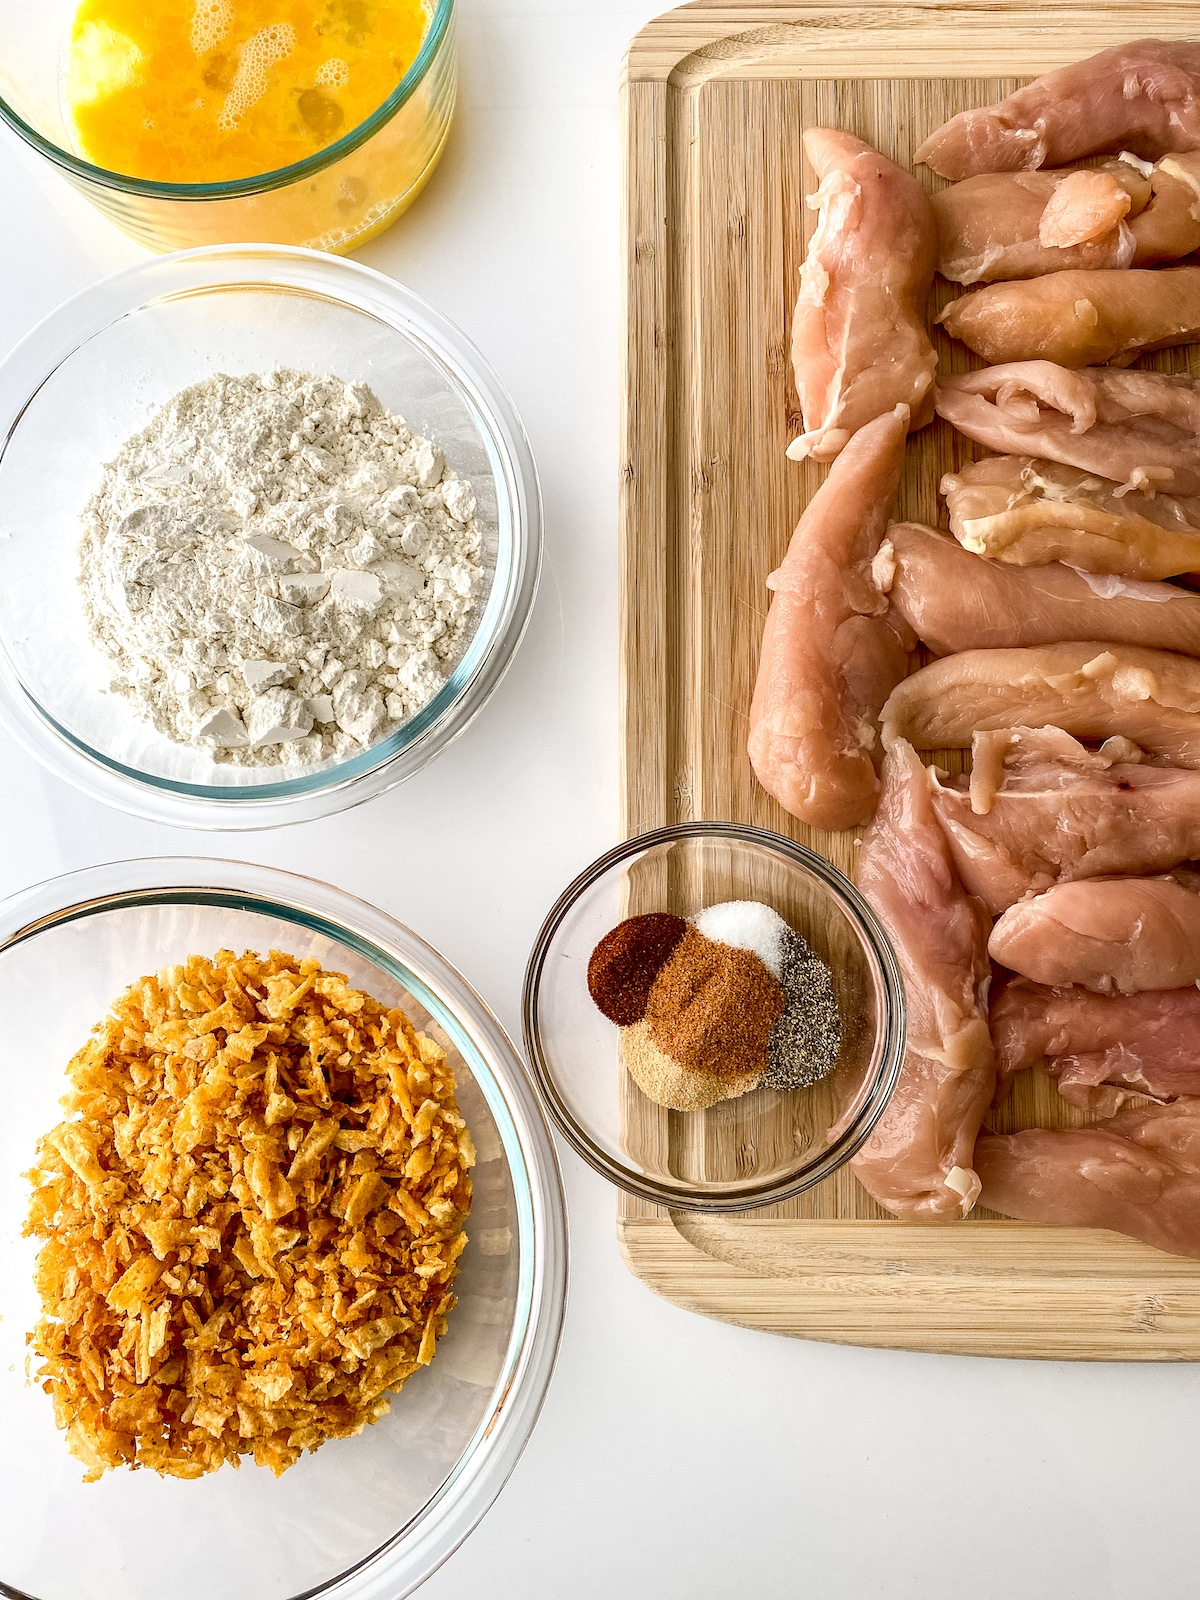 Ingredients for chicken tenders on cutting board and in white bowls on table